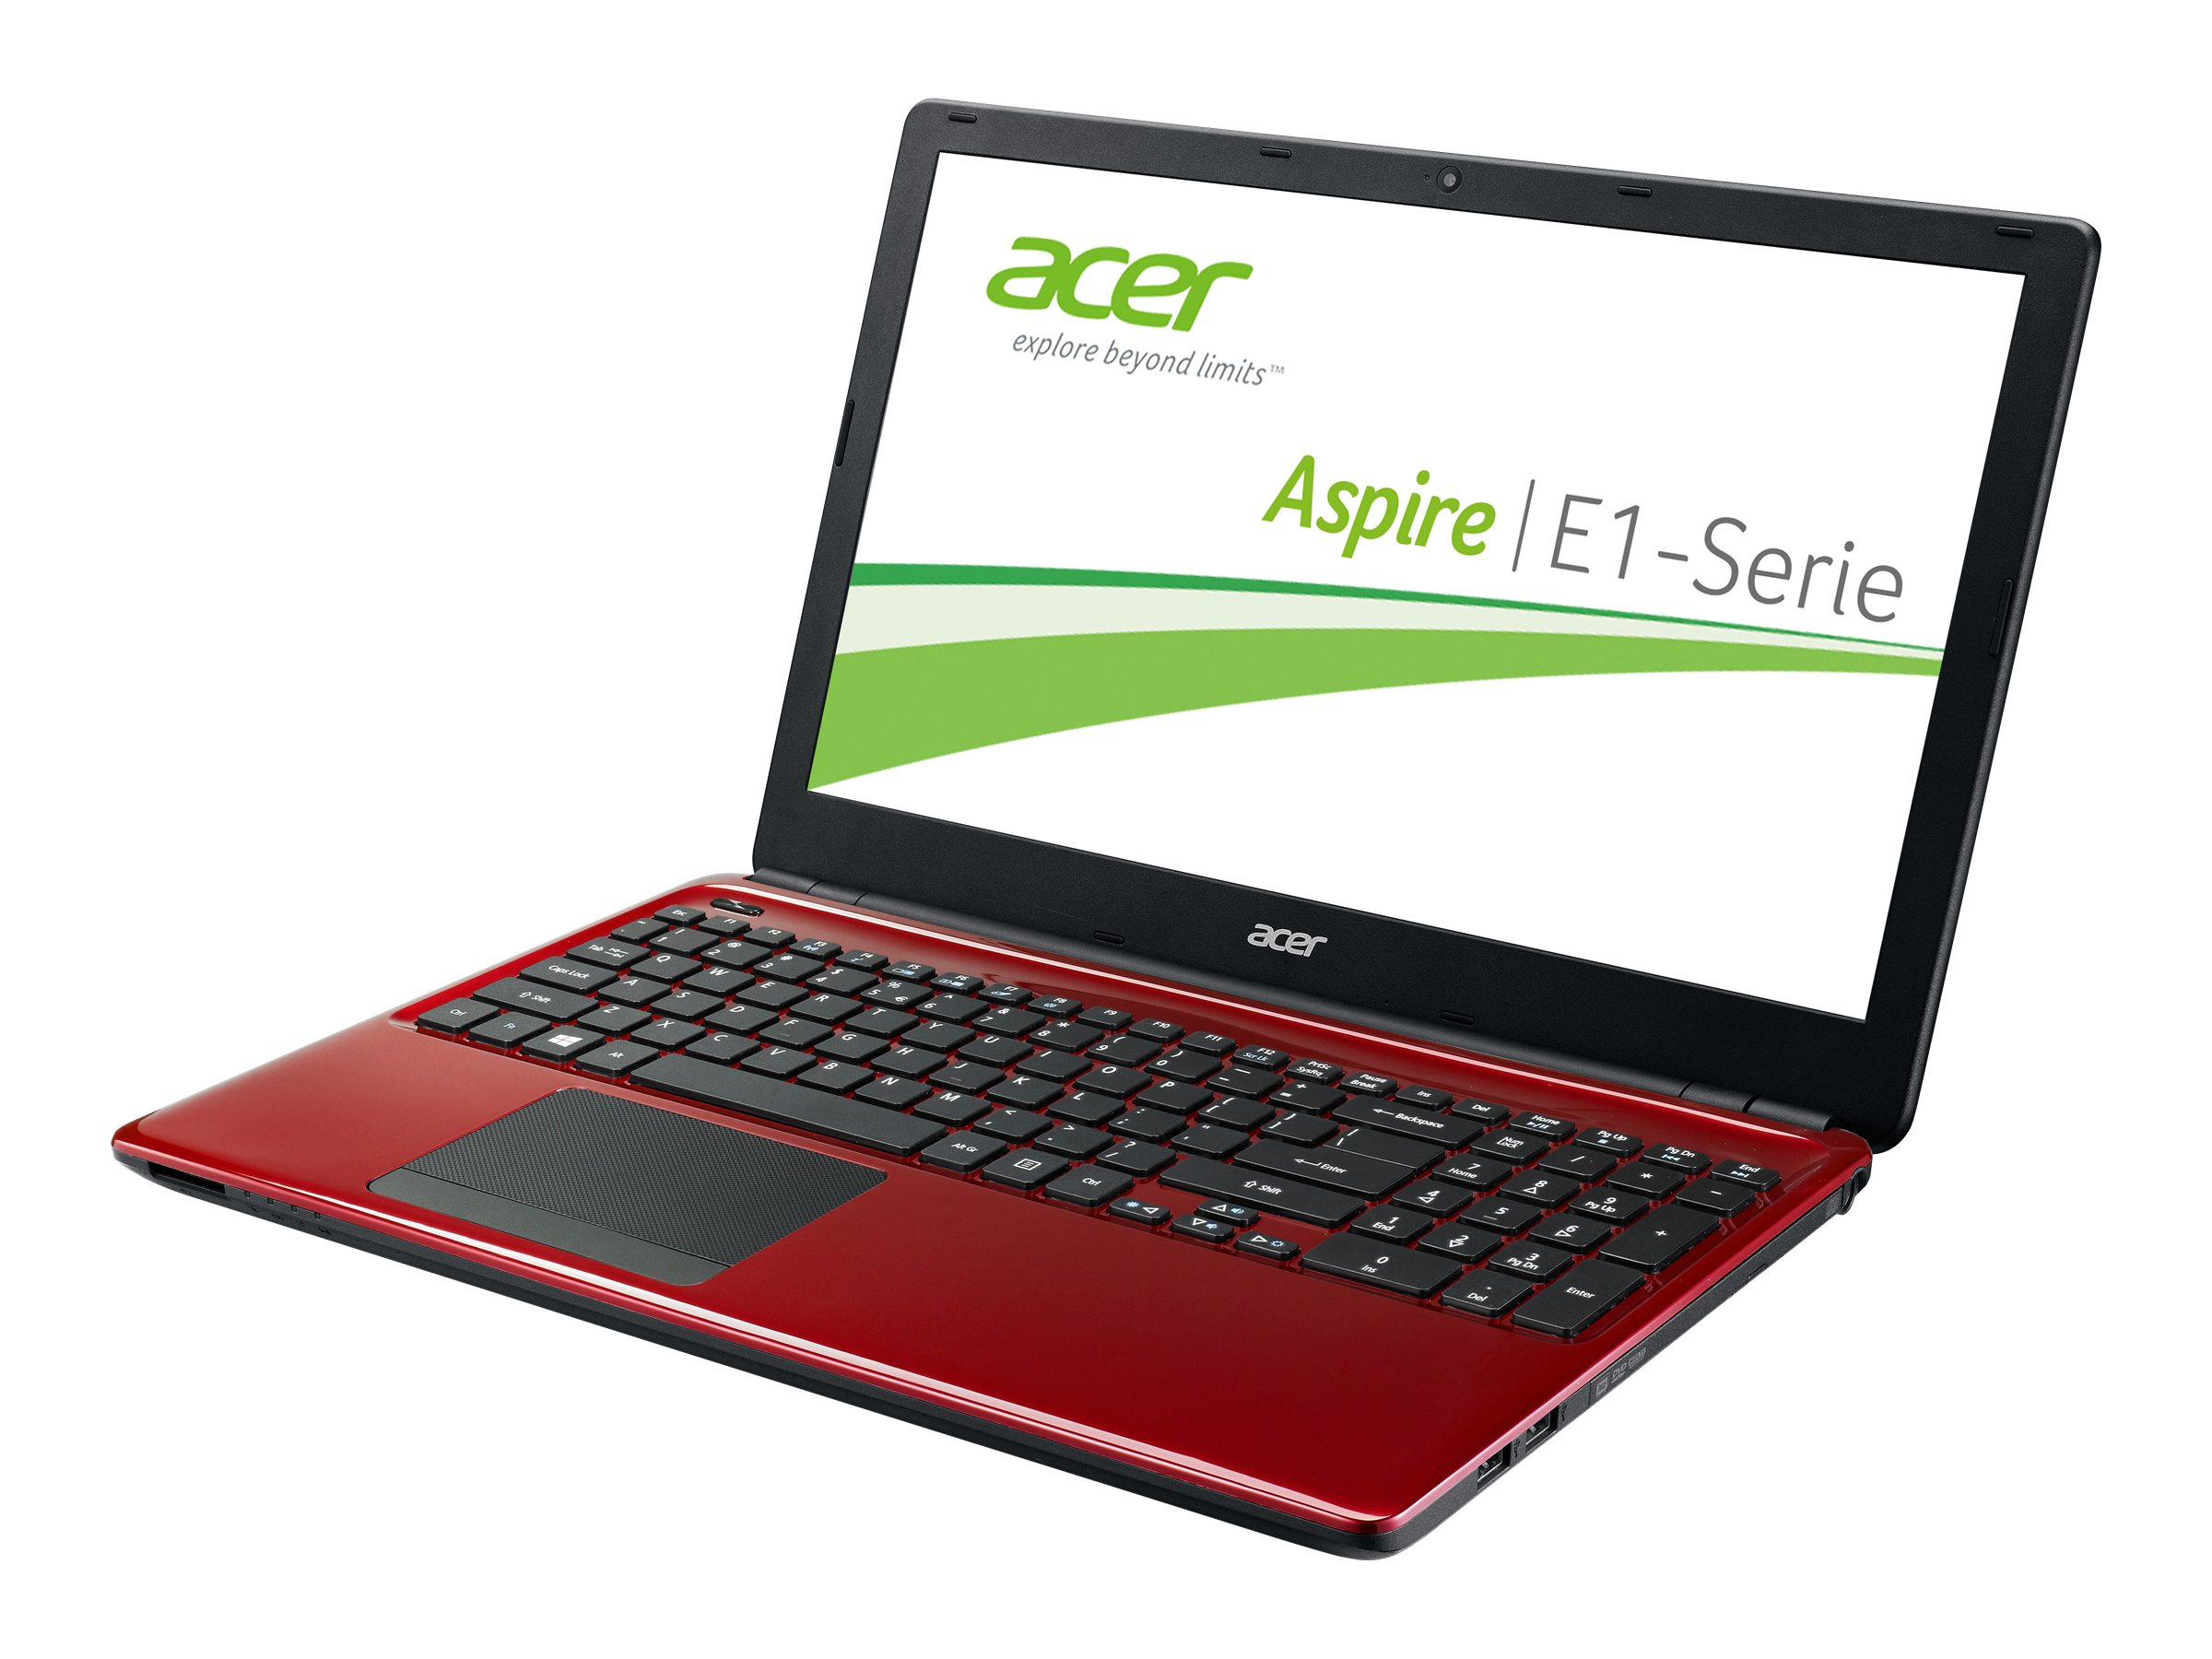 Acer Aspire E1-532-2635 : 1.4GHz Celeron 15.6in display, NX.MHGAA.001, 16738173, Notebooks